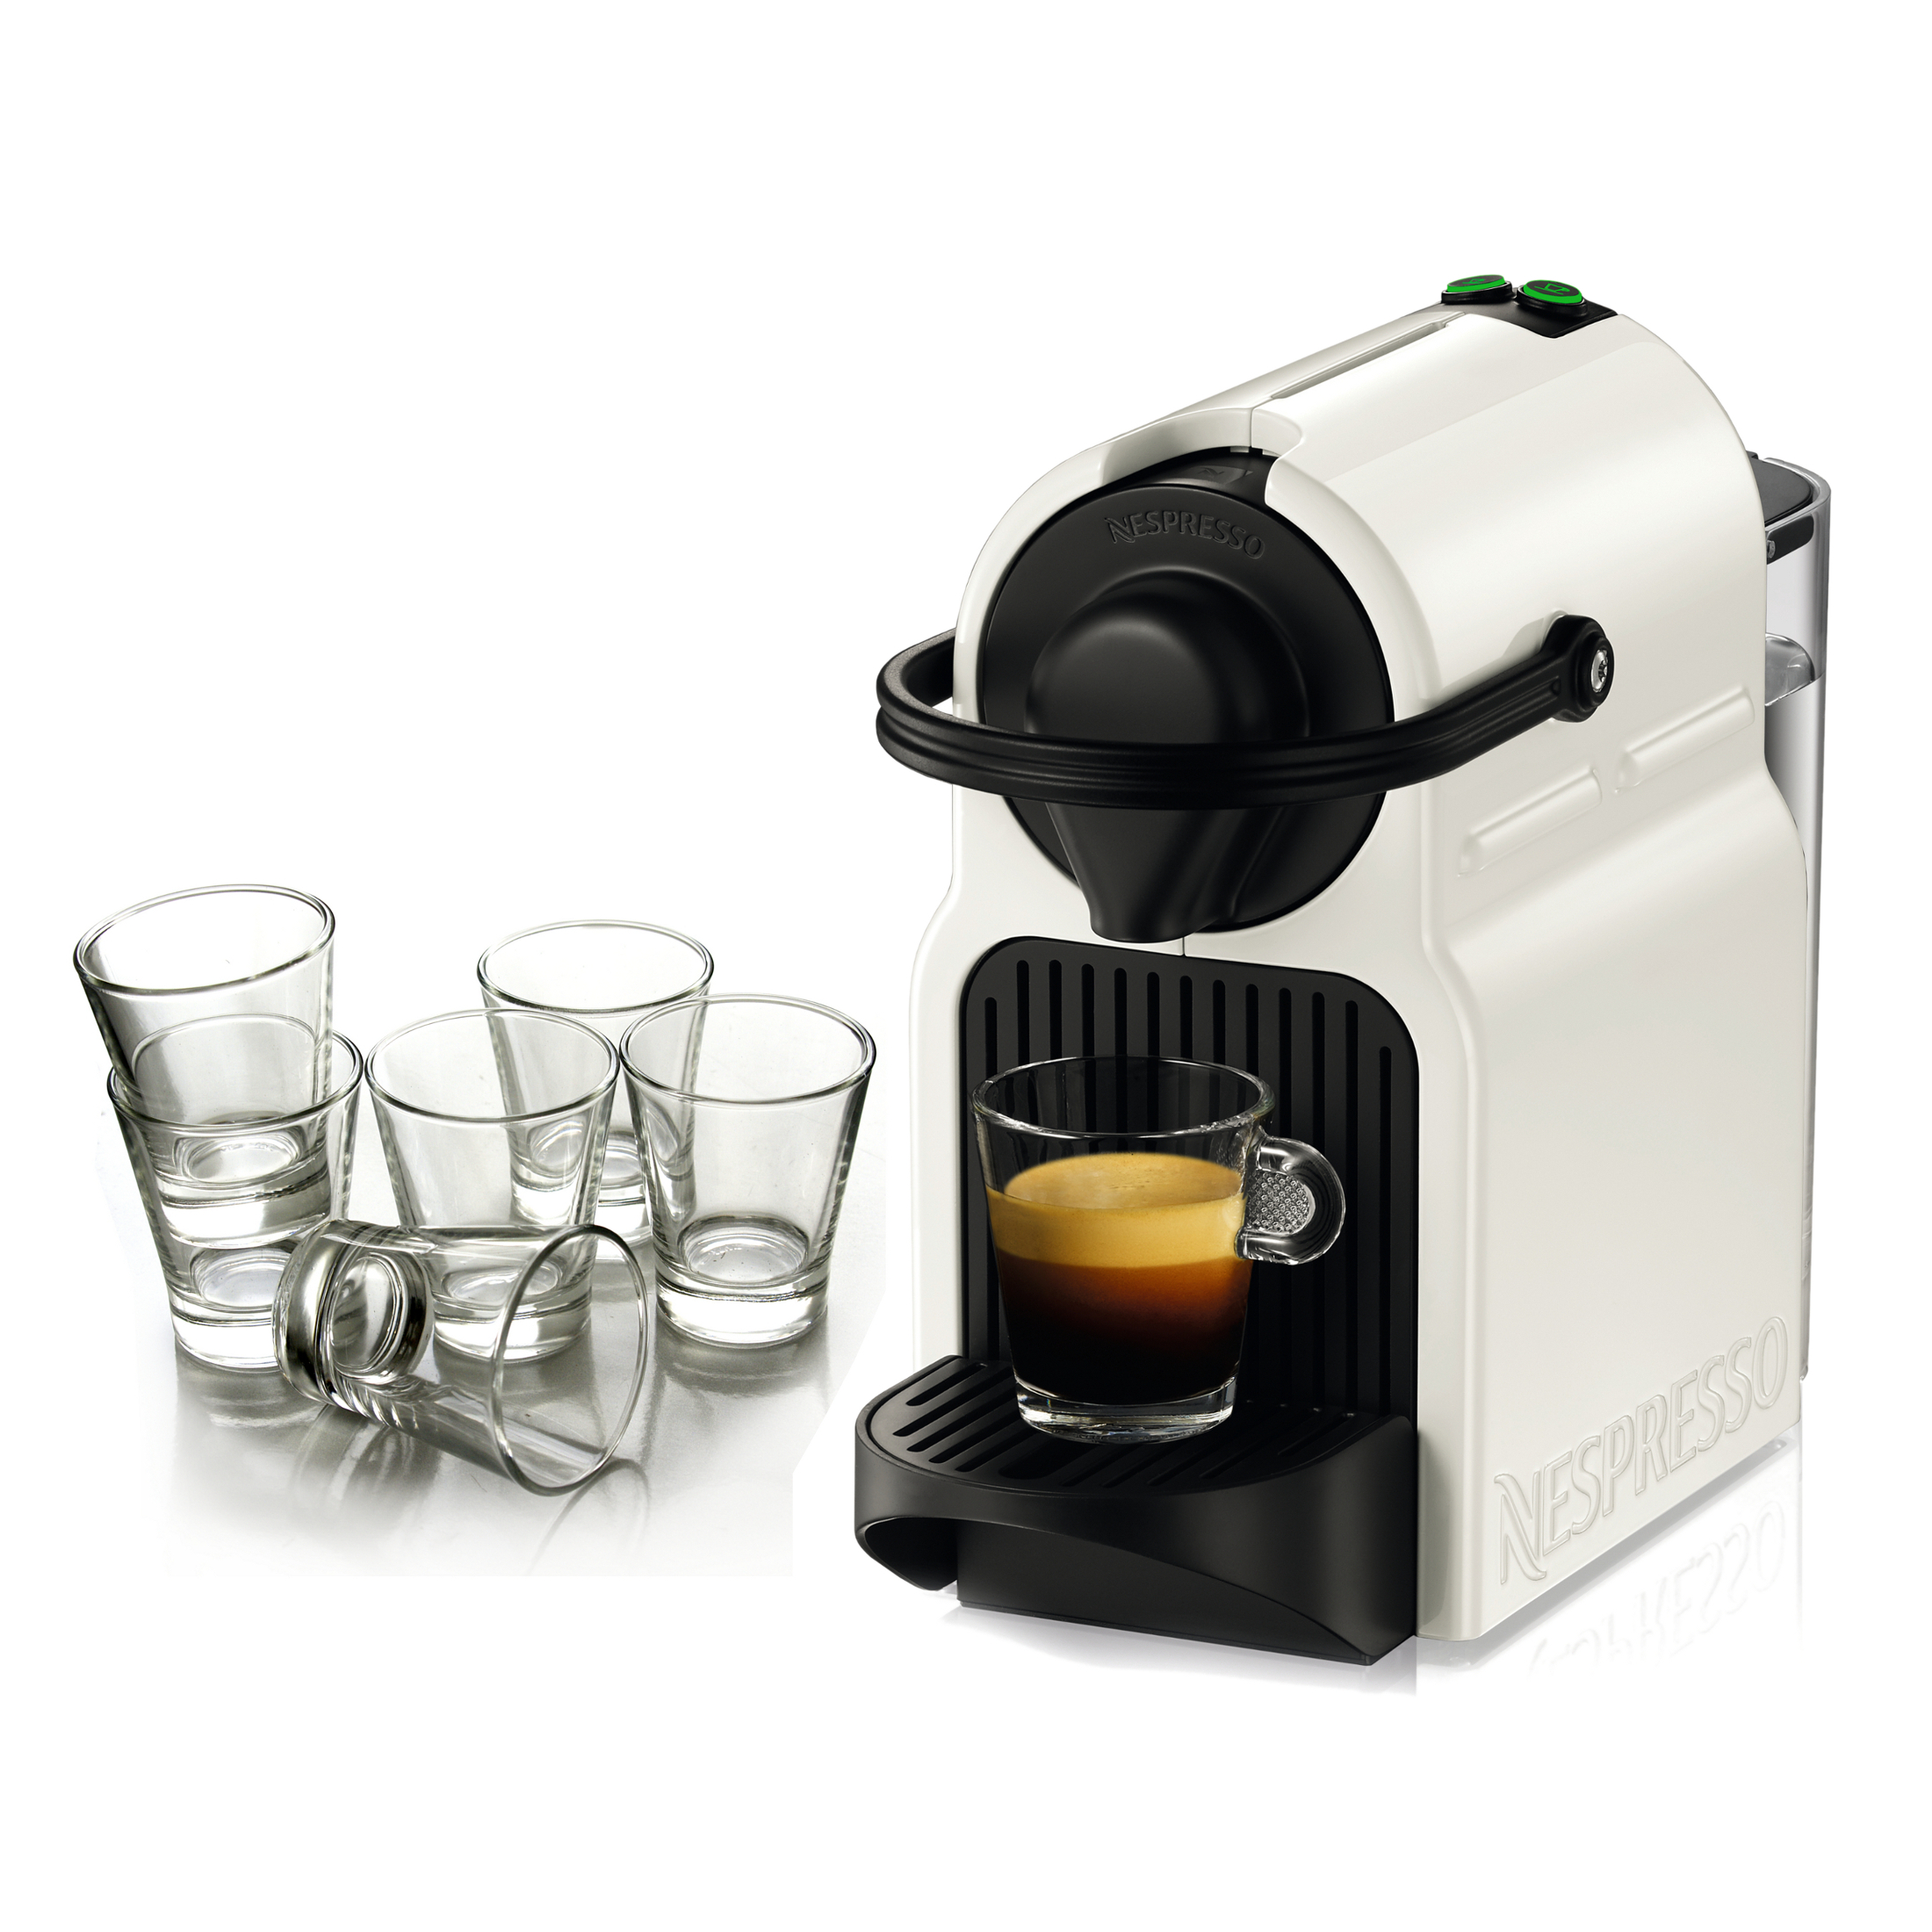 Nespresso Original Line Inissia White Espresso Maker with Free Set of 6 Espresso Glasses